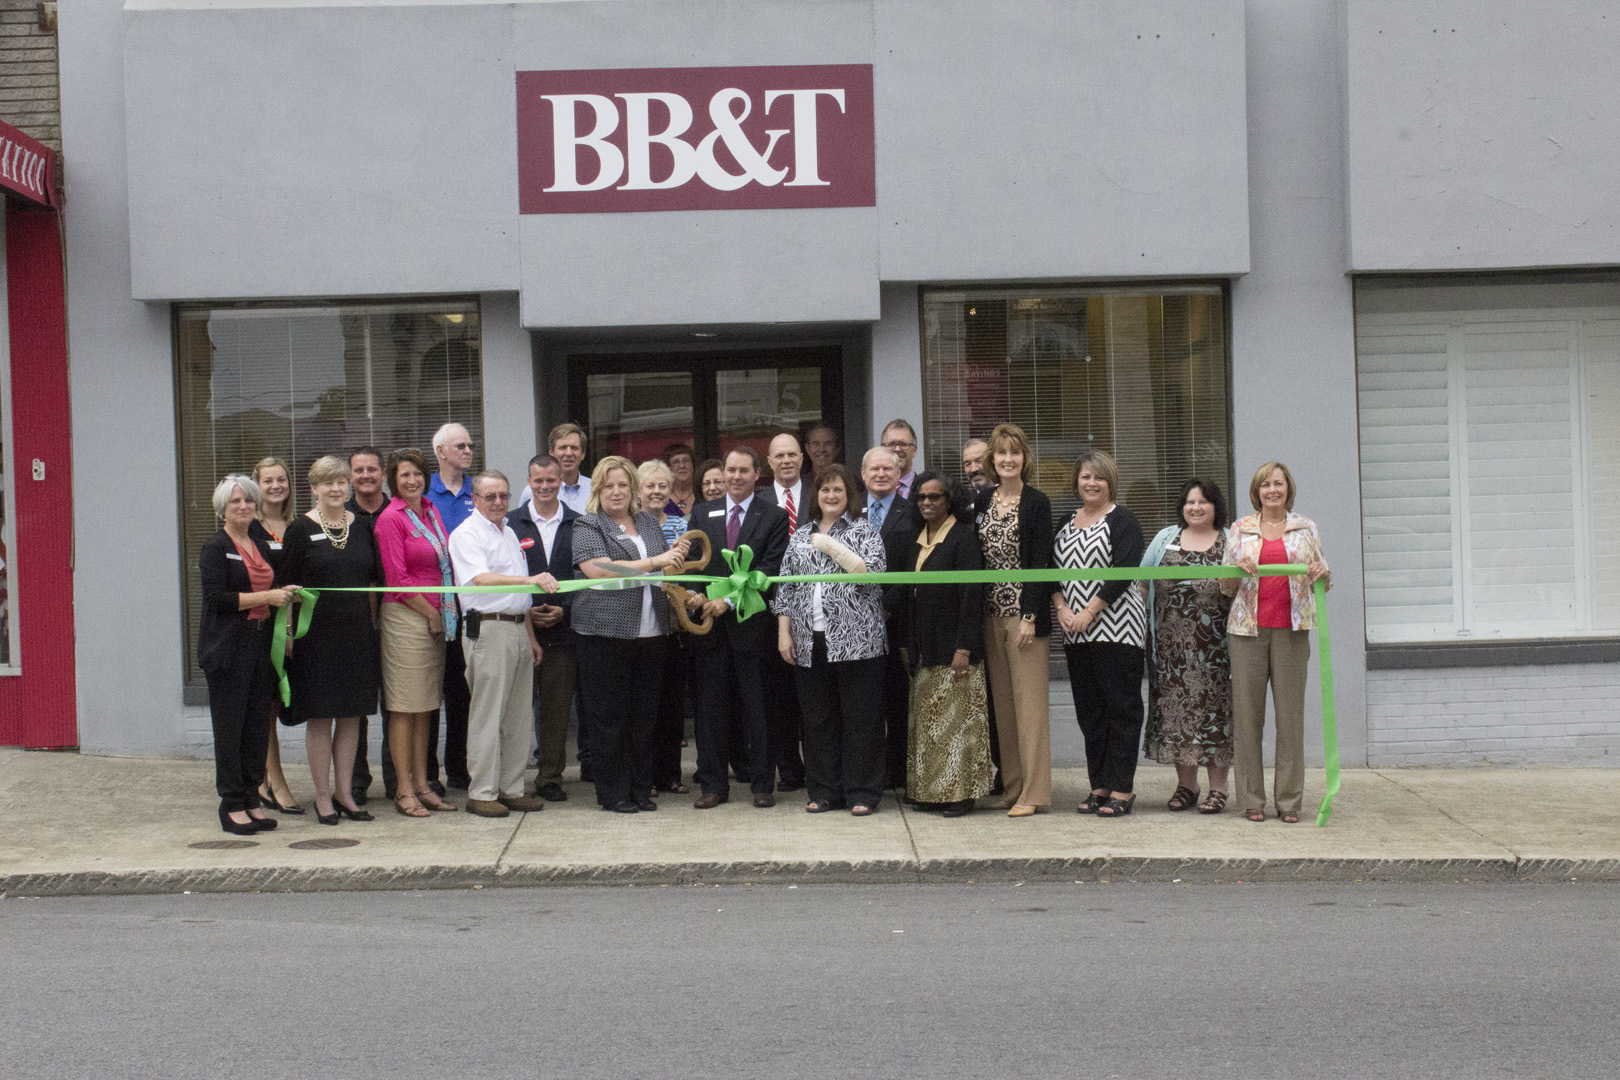 BB&T New Downtown Hopkinsville Branch Office